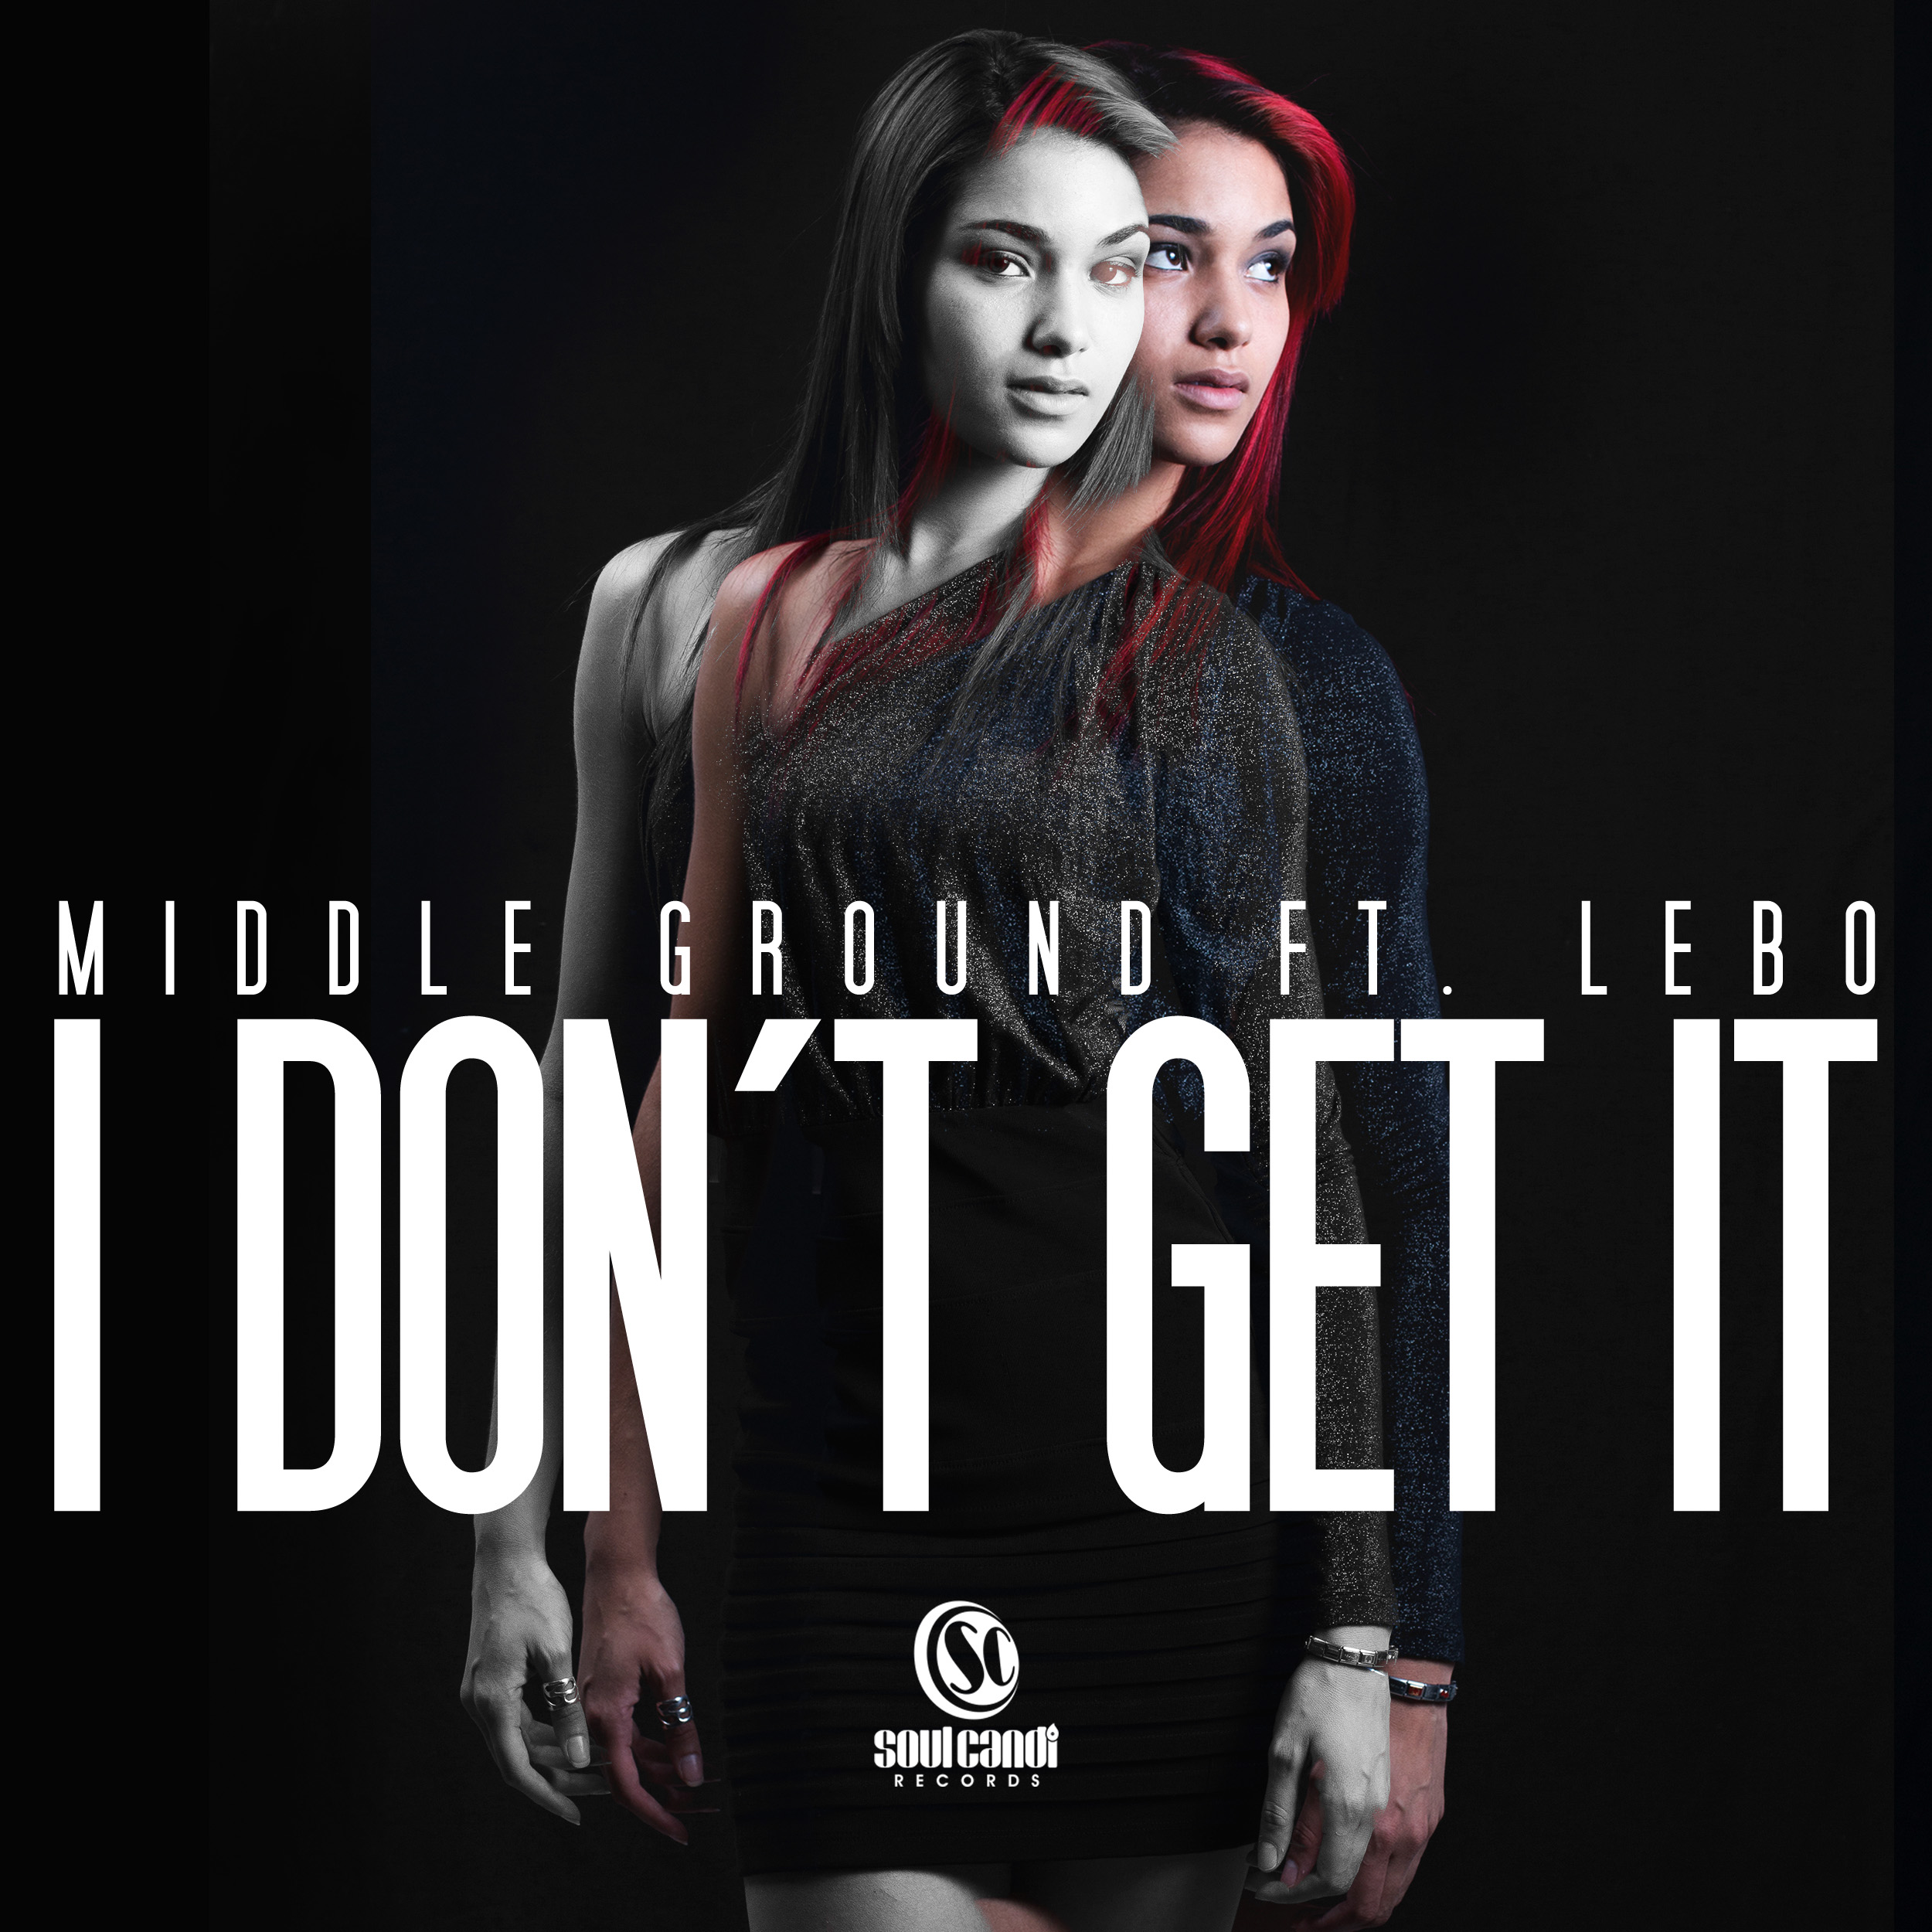 Middle Ground - I Don't Get It